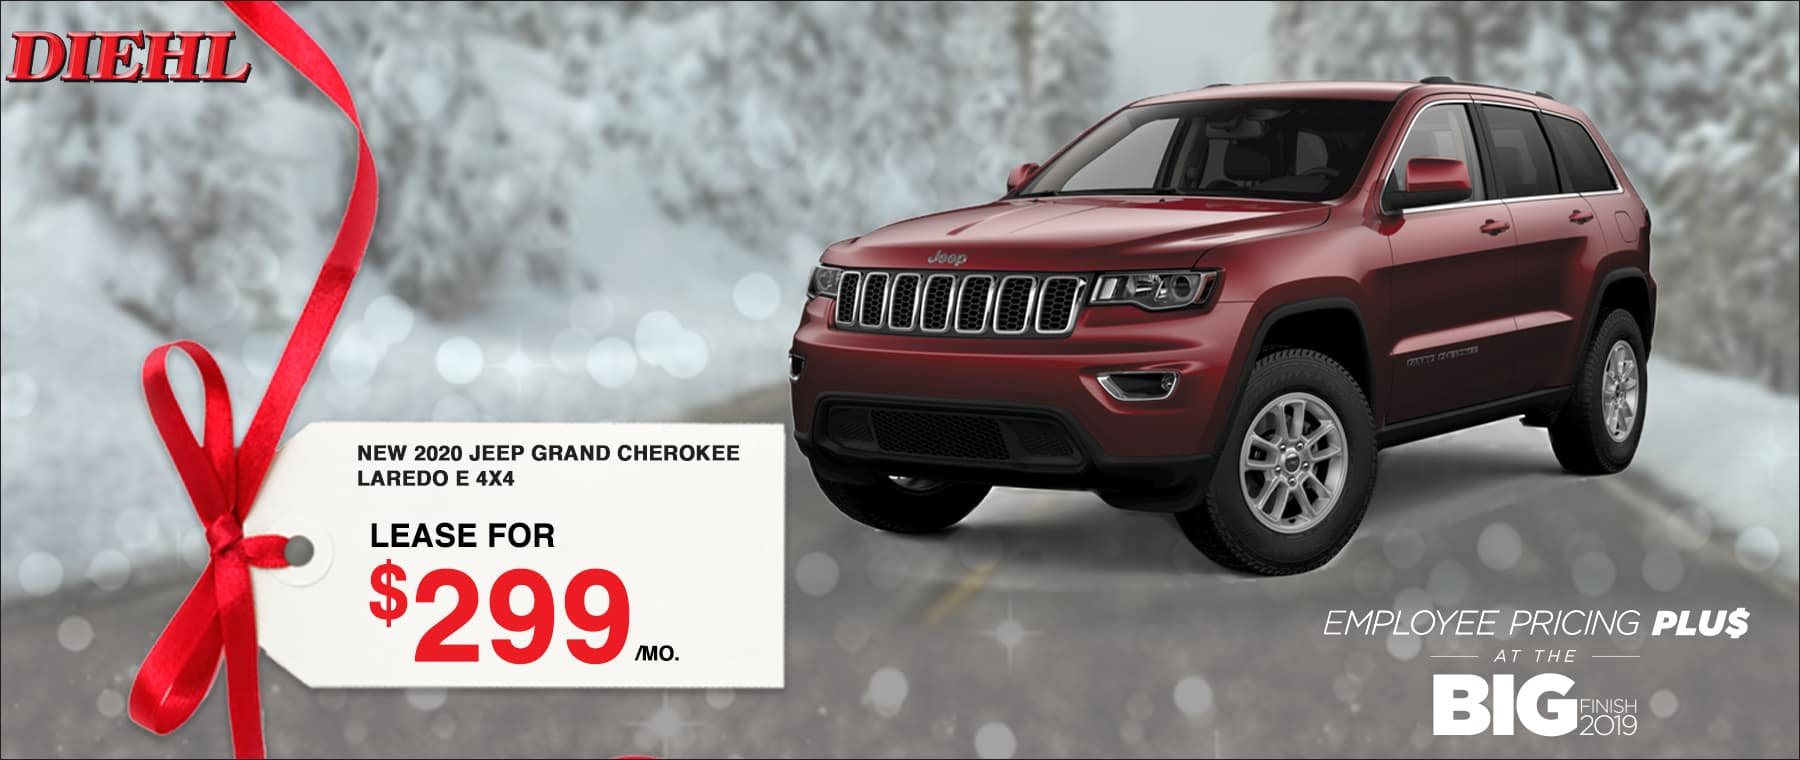 V3612_2020JEEPGRANDCHEROKEE Big finish event employee pricing plus Chrysler dodge jeep ram diehl of Robinson pa diehl automotive lease special buy now savings discount